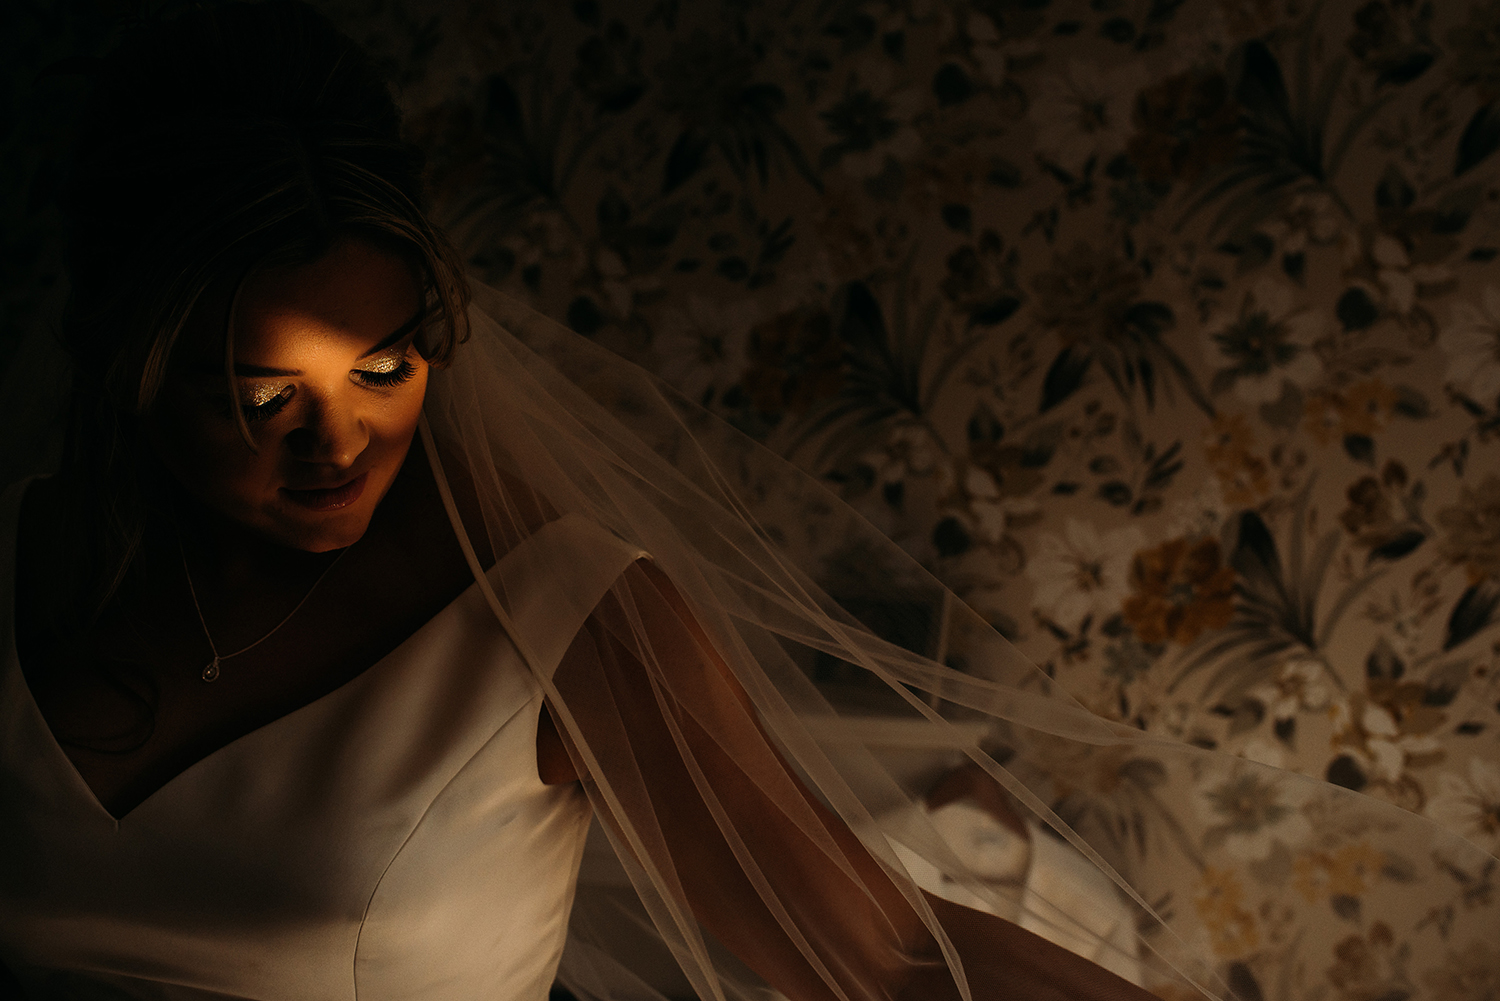 sunlight hitting the brides eyes as she plays with her veil